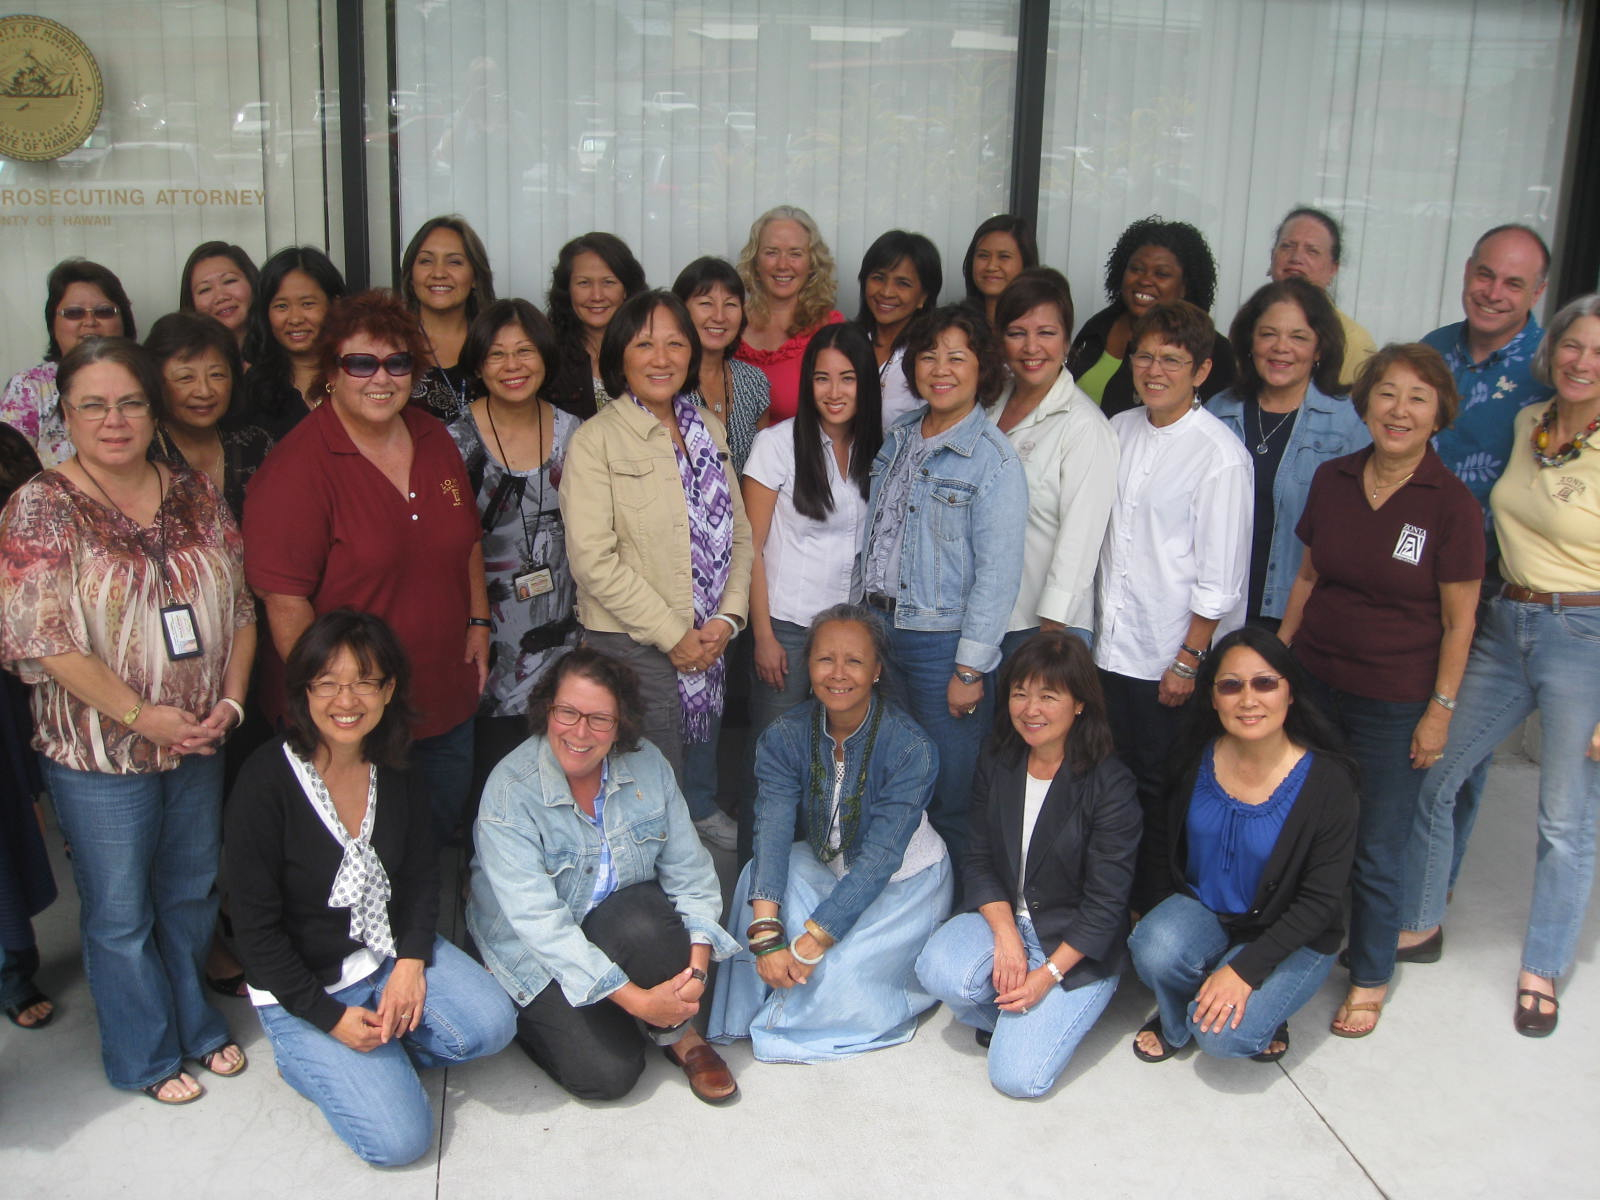 Denim Day brings Zonta Club together with Prosecutor's office